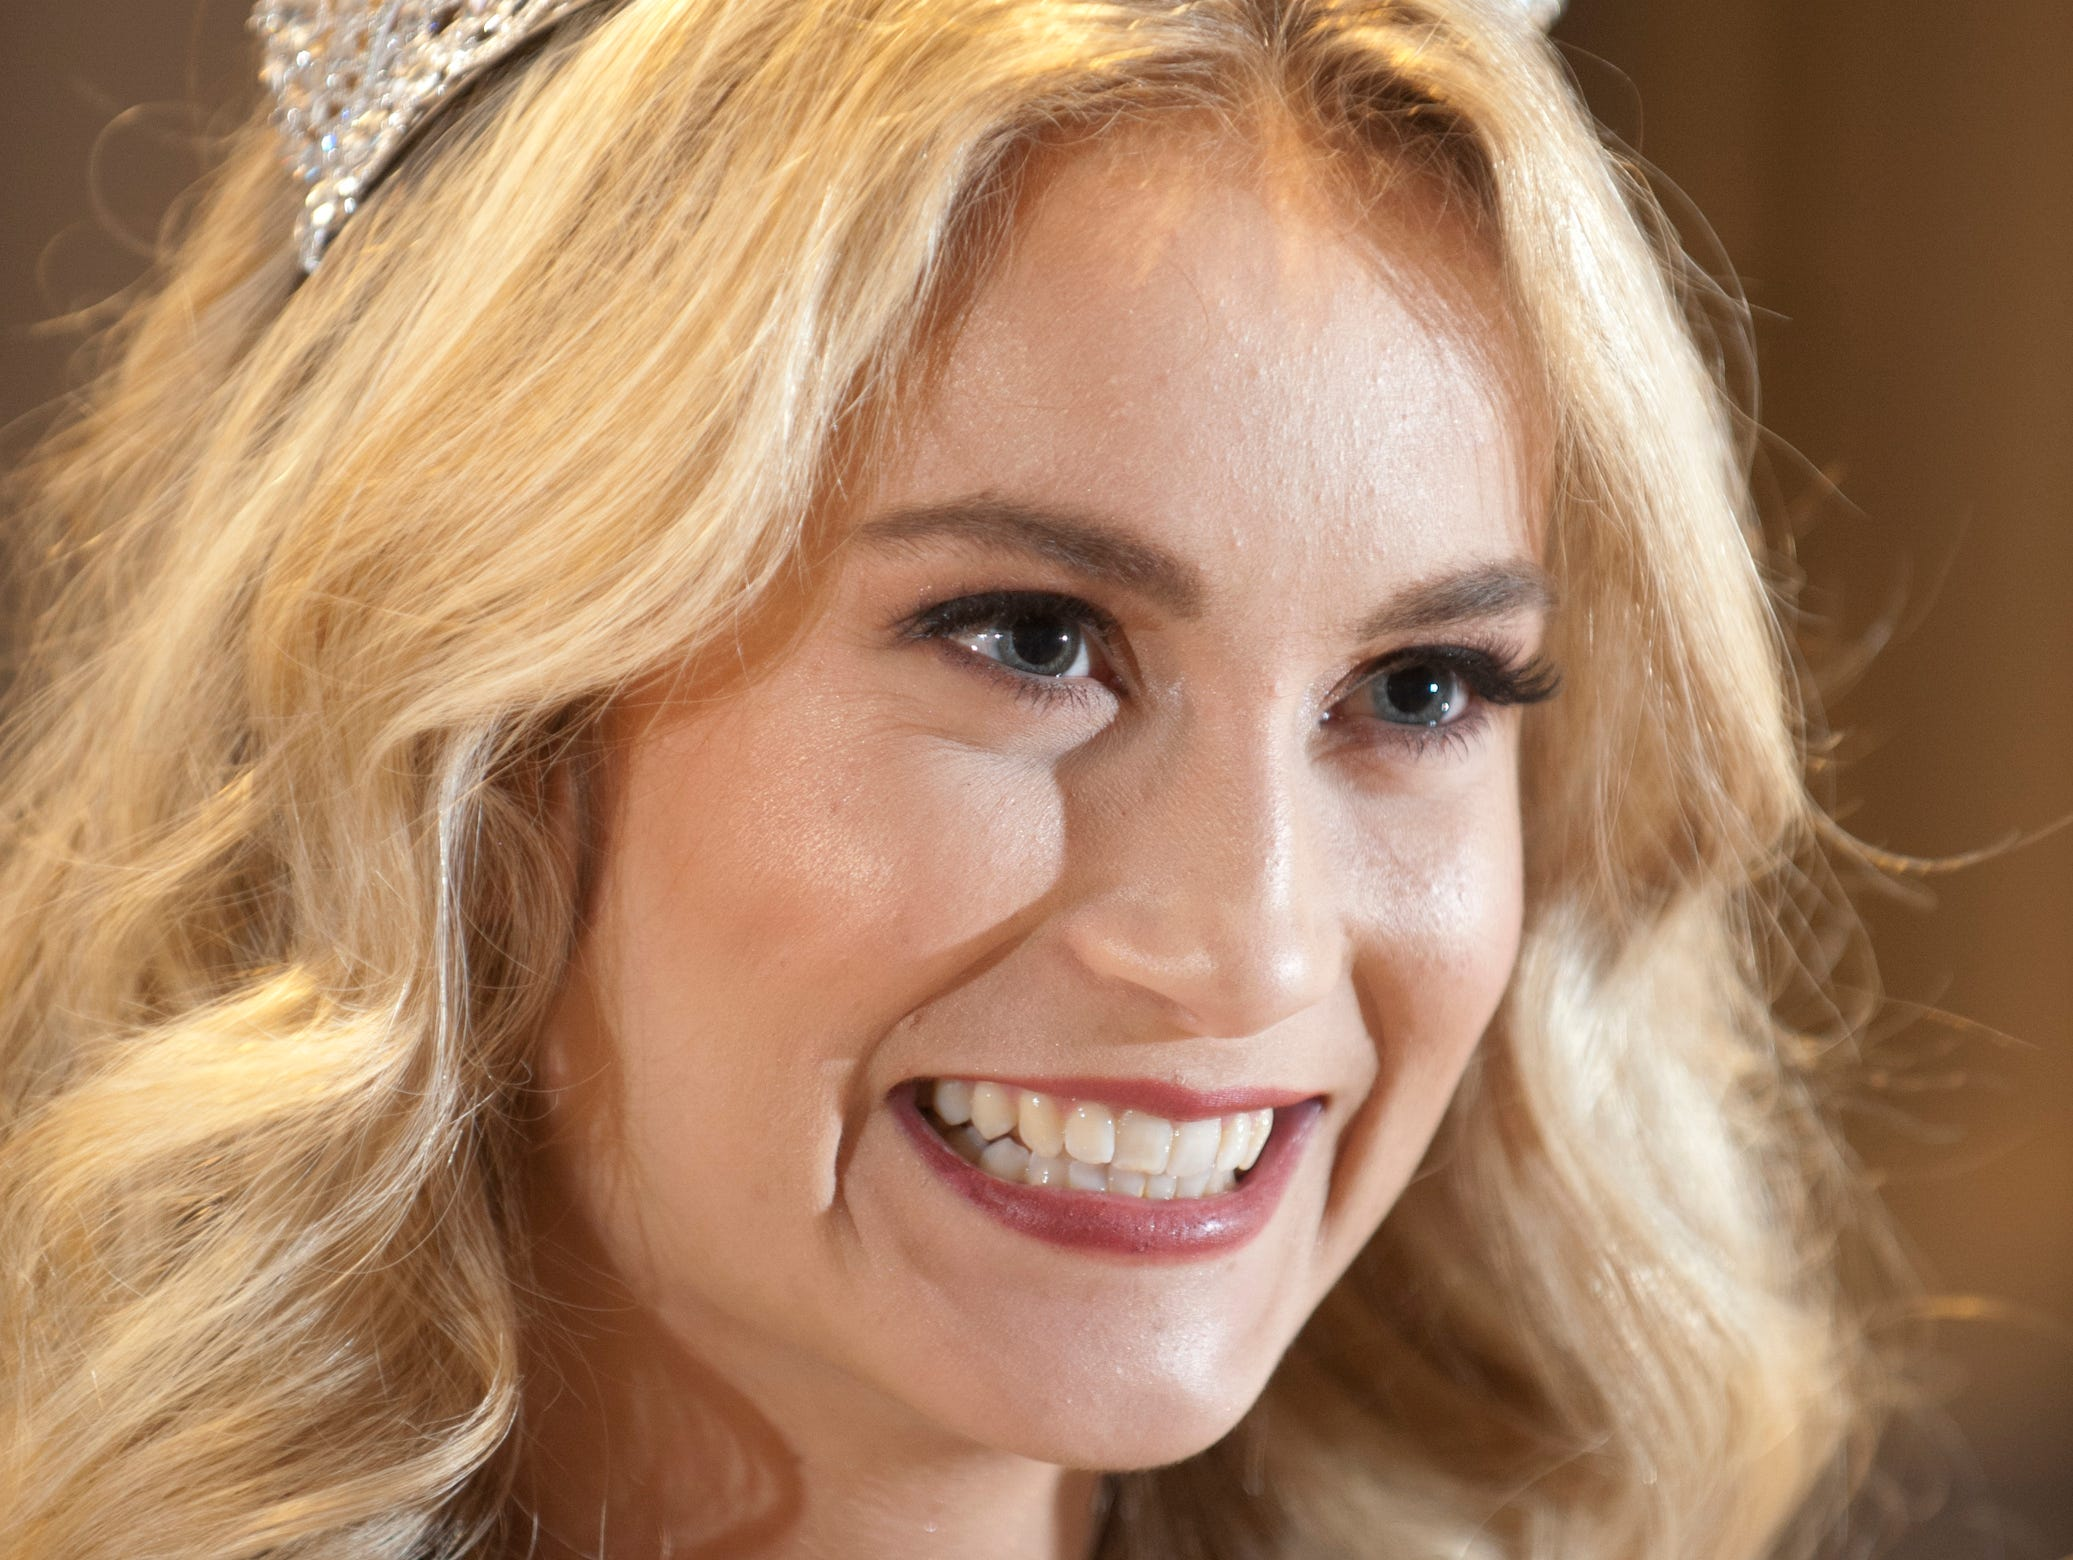 Kentucky Derby Festival Princess Allison Spears, 21, of Catlettsburg, Kentucky, is a junior at the University of Kentucky majoring in pre-law and neuroscience. 06 January 2019